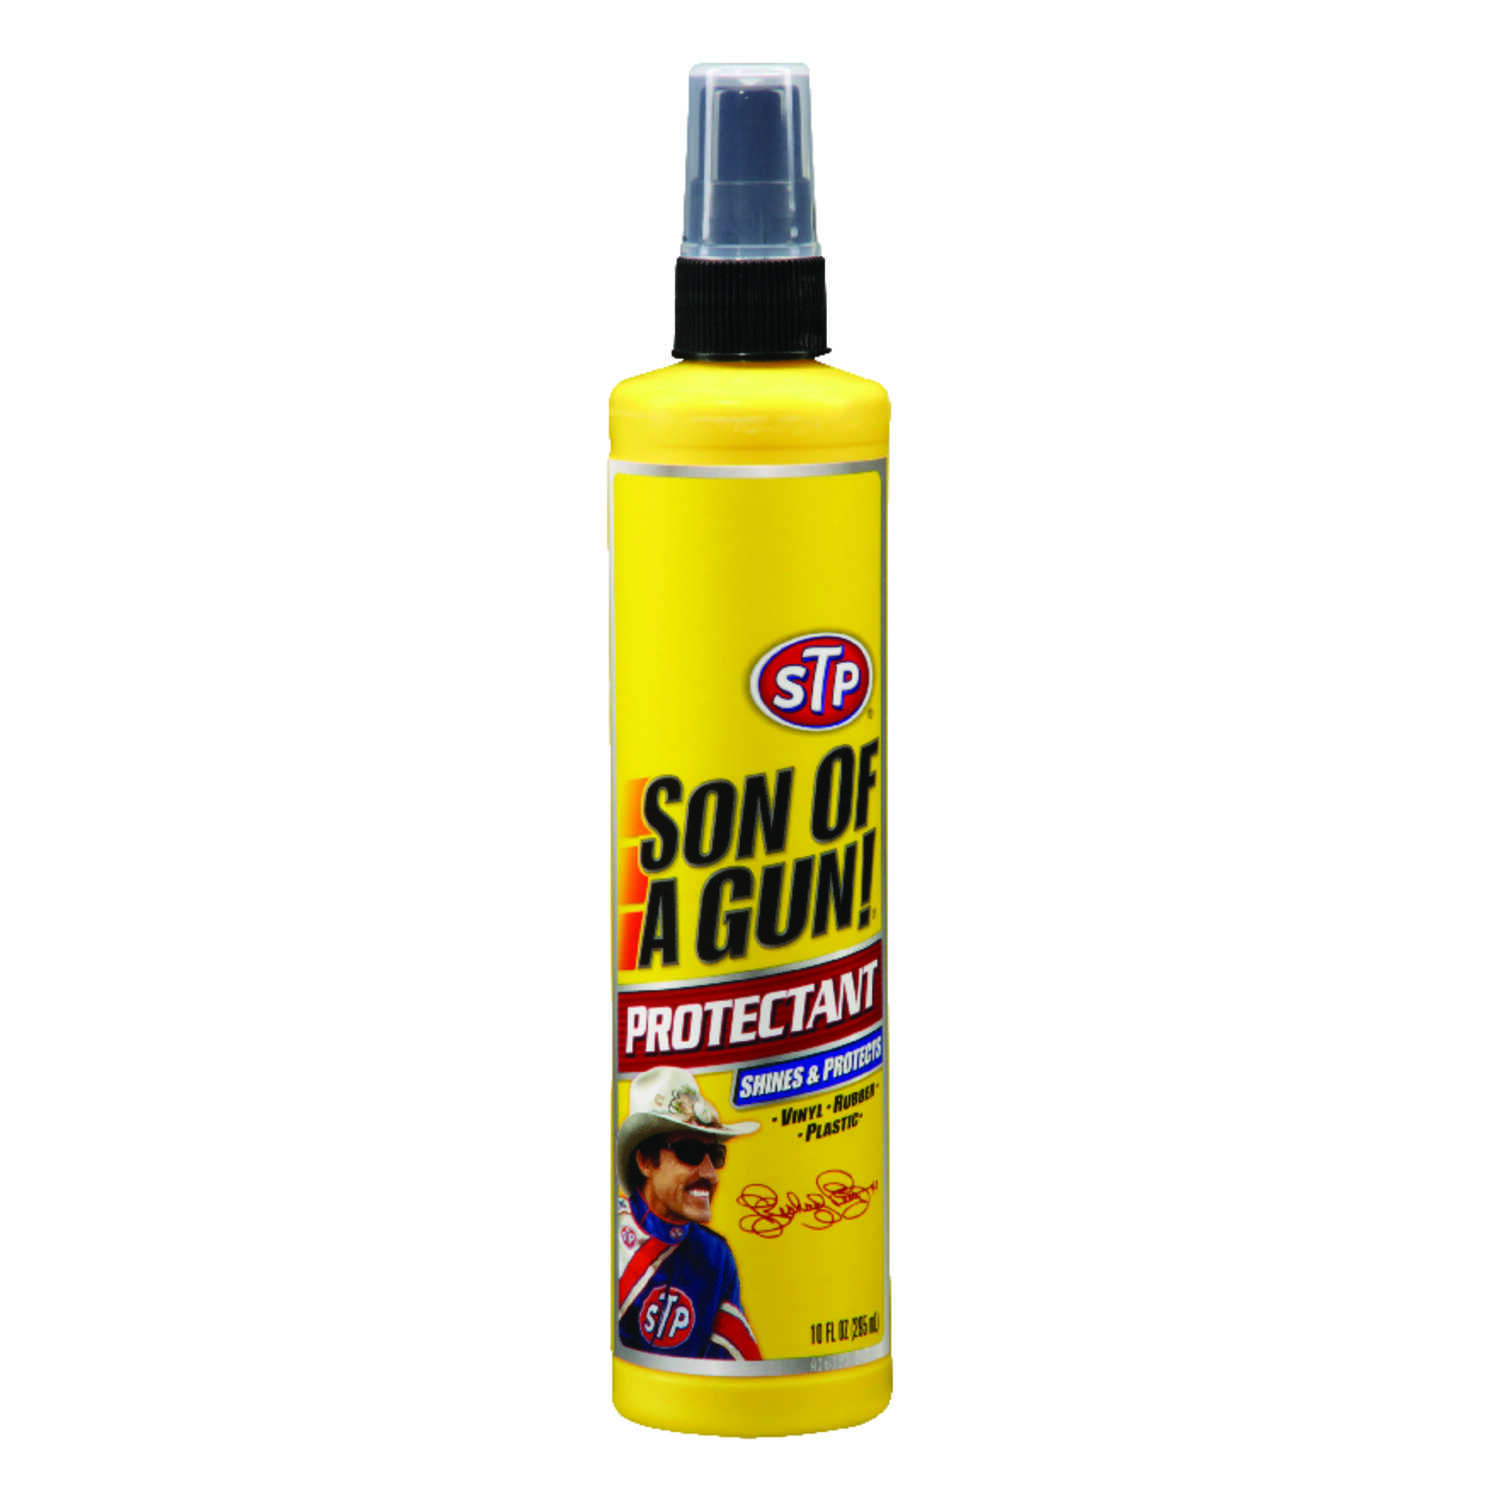 STP  Son of A Gun  Leather  Protectant  10 oz. Bottle